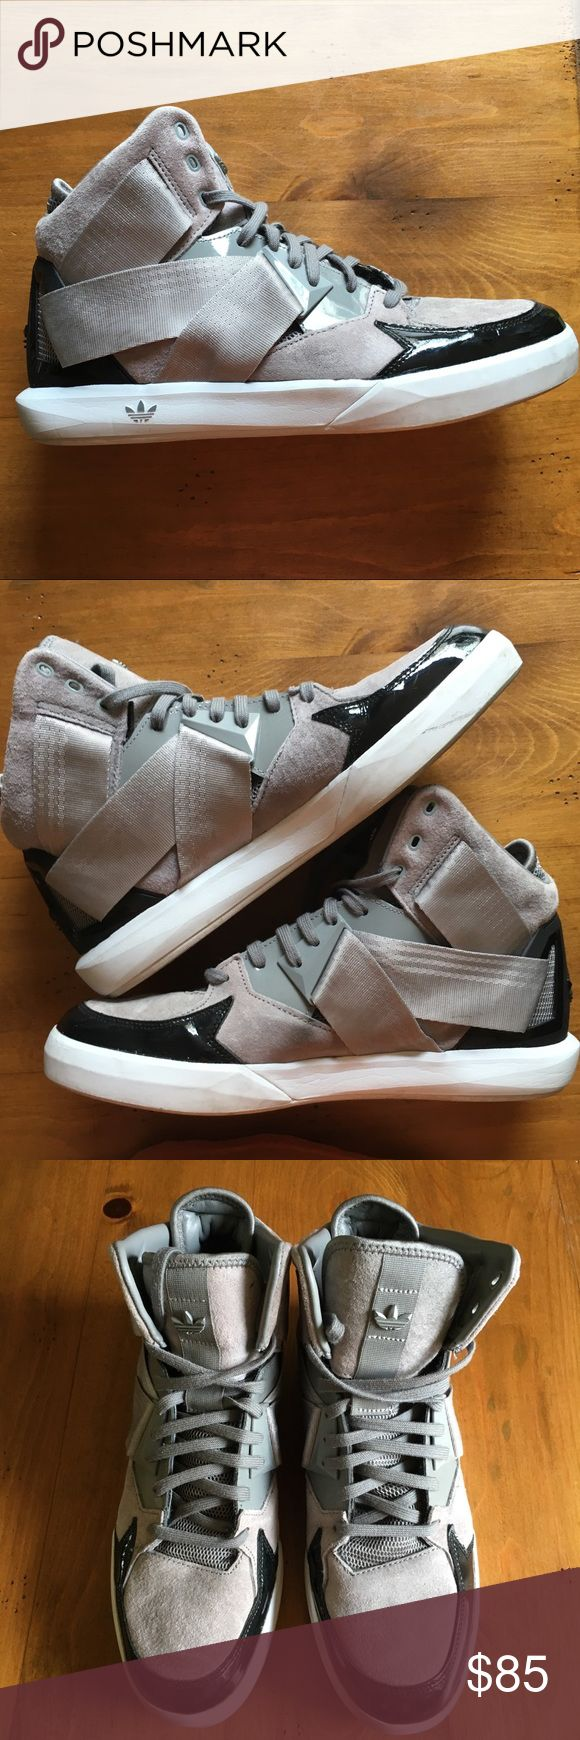 Adidas hi tops limited edition, grey & black Limited edition Adidas hi top basketball shoes are in great condition hardly worn. Mens size 9.5 Adidas Shoes Sneakers